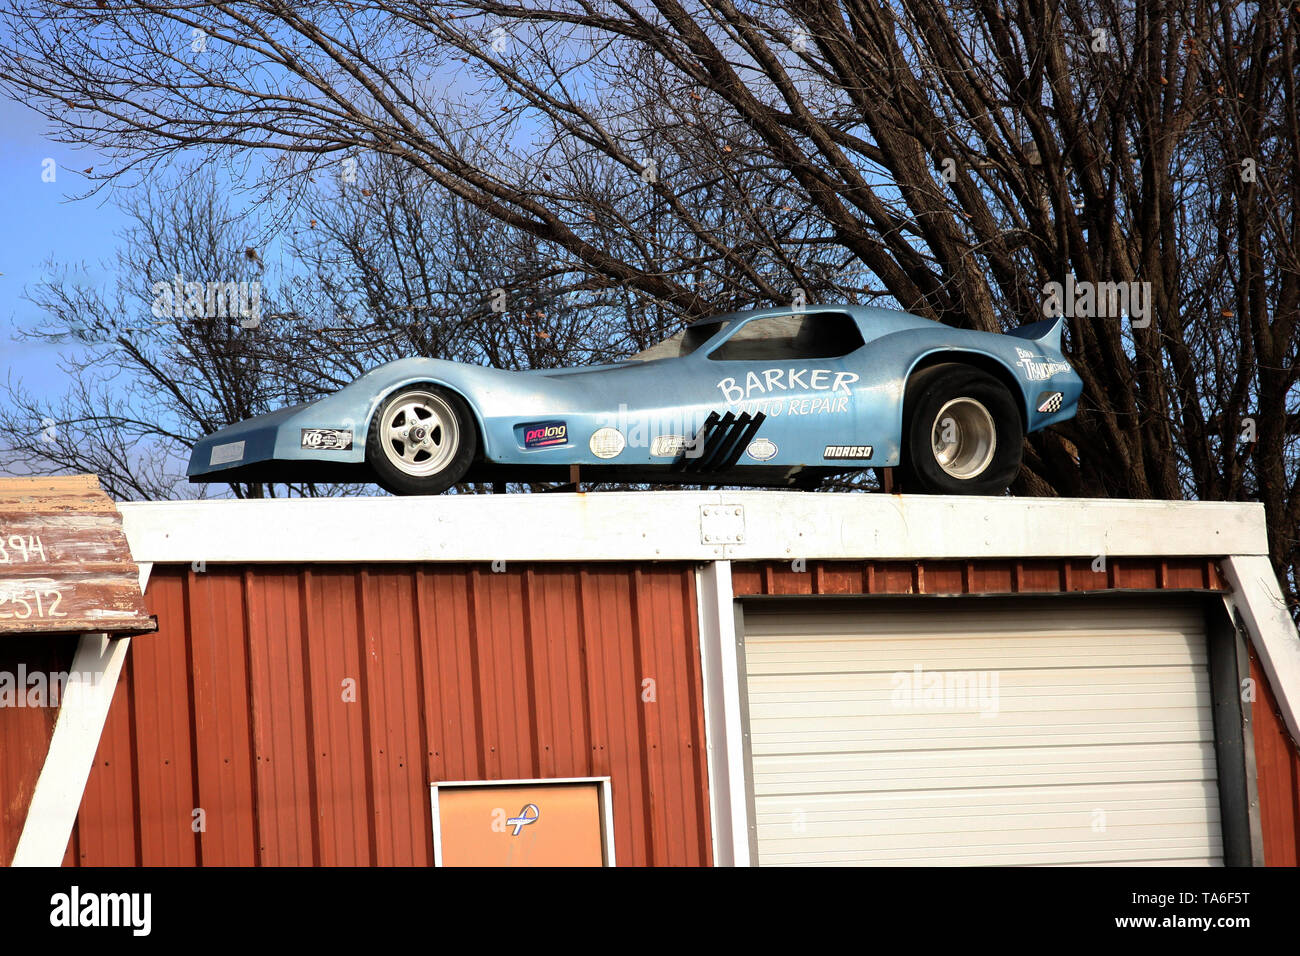 Sports car on top of a garage roof - Stock Image